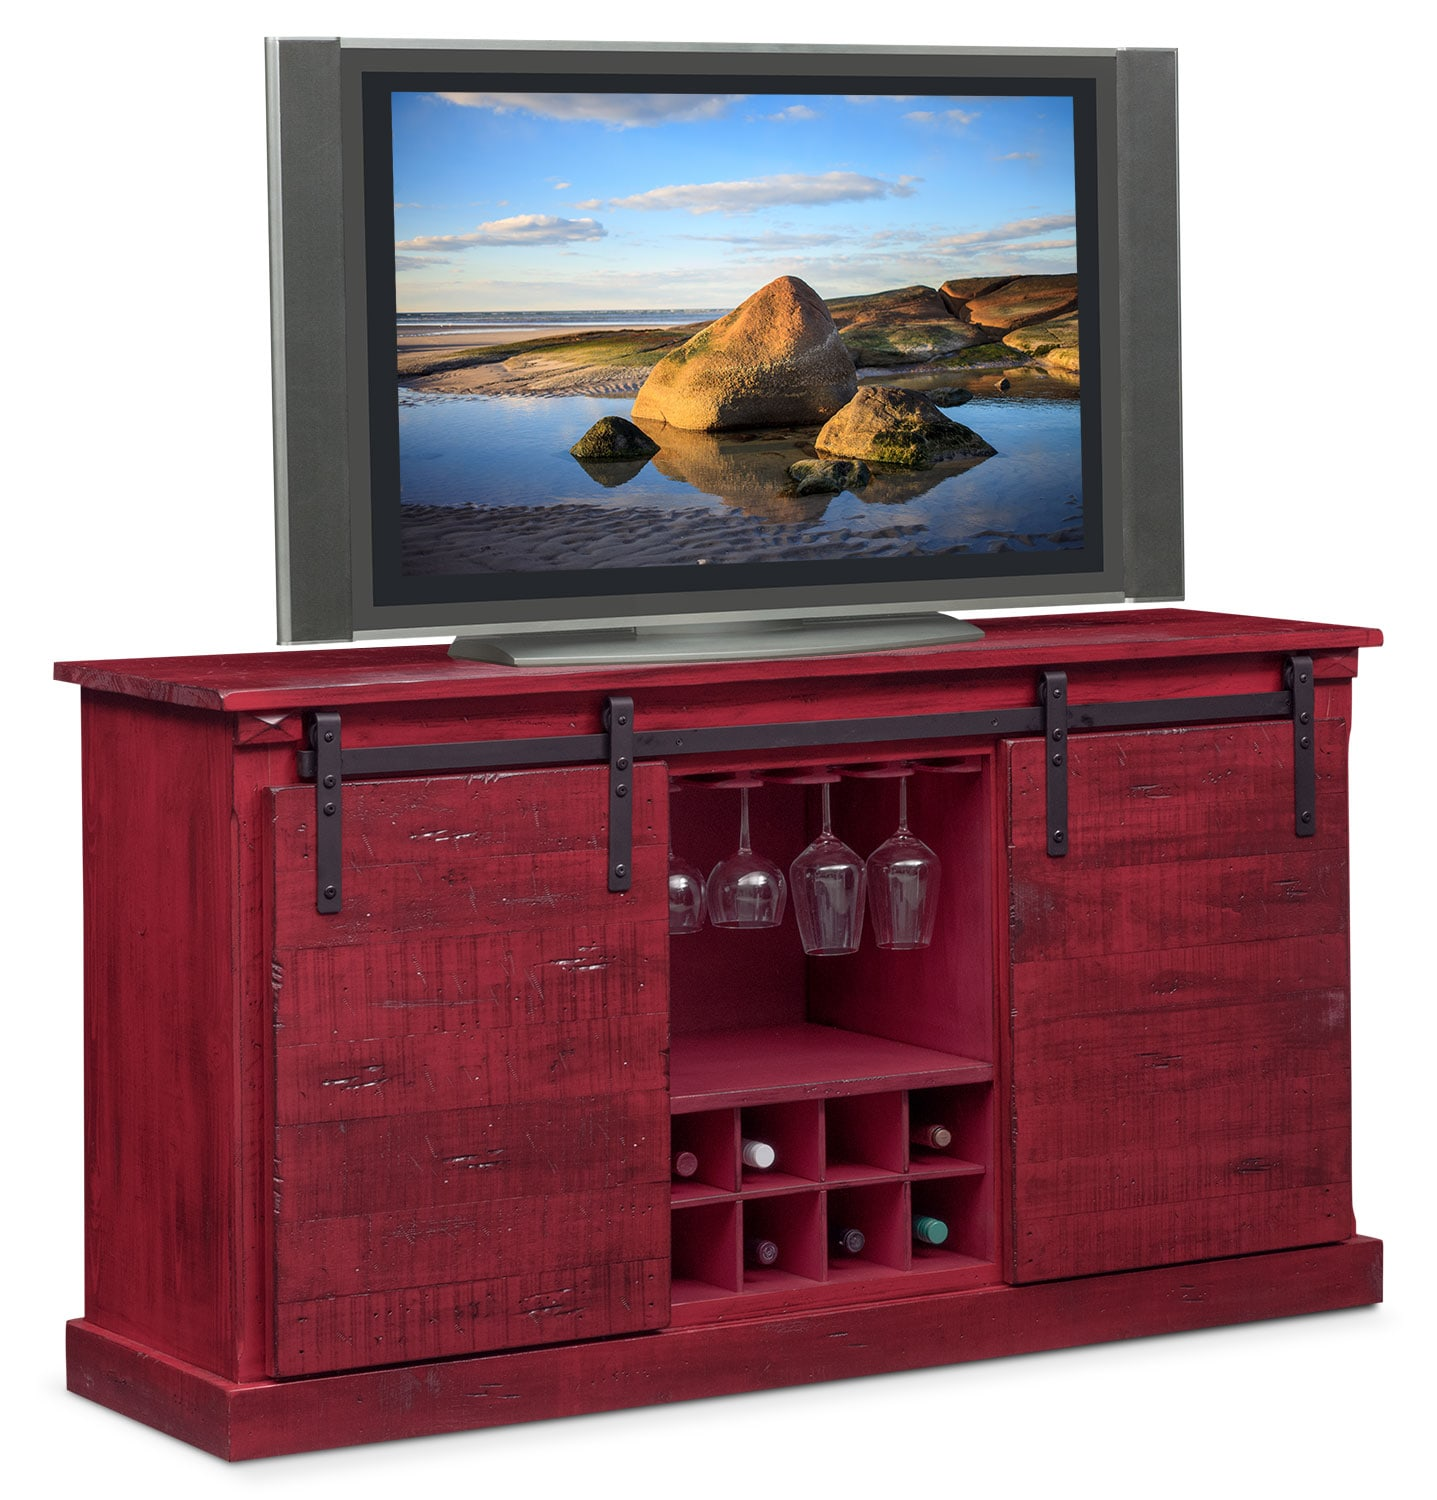 Good Entertainment Furniture   Ashcroft Media Credenza With Wine Storage   Red